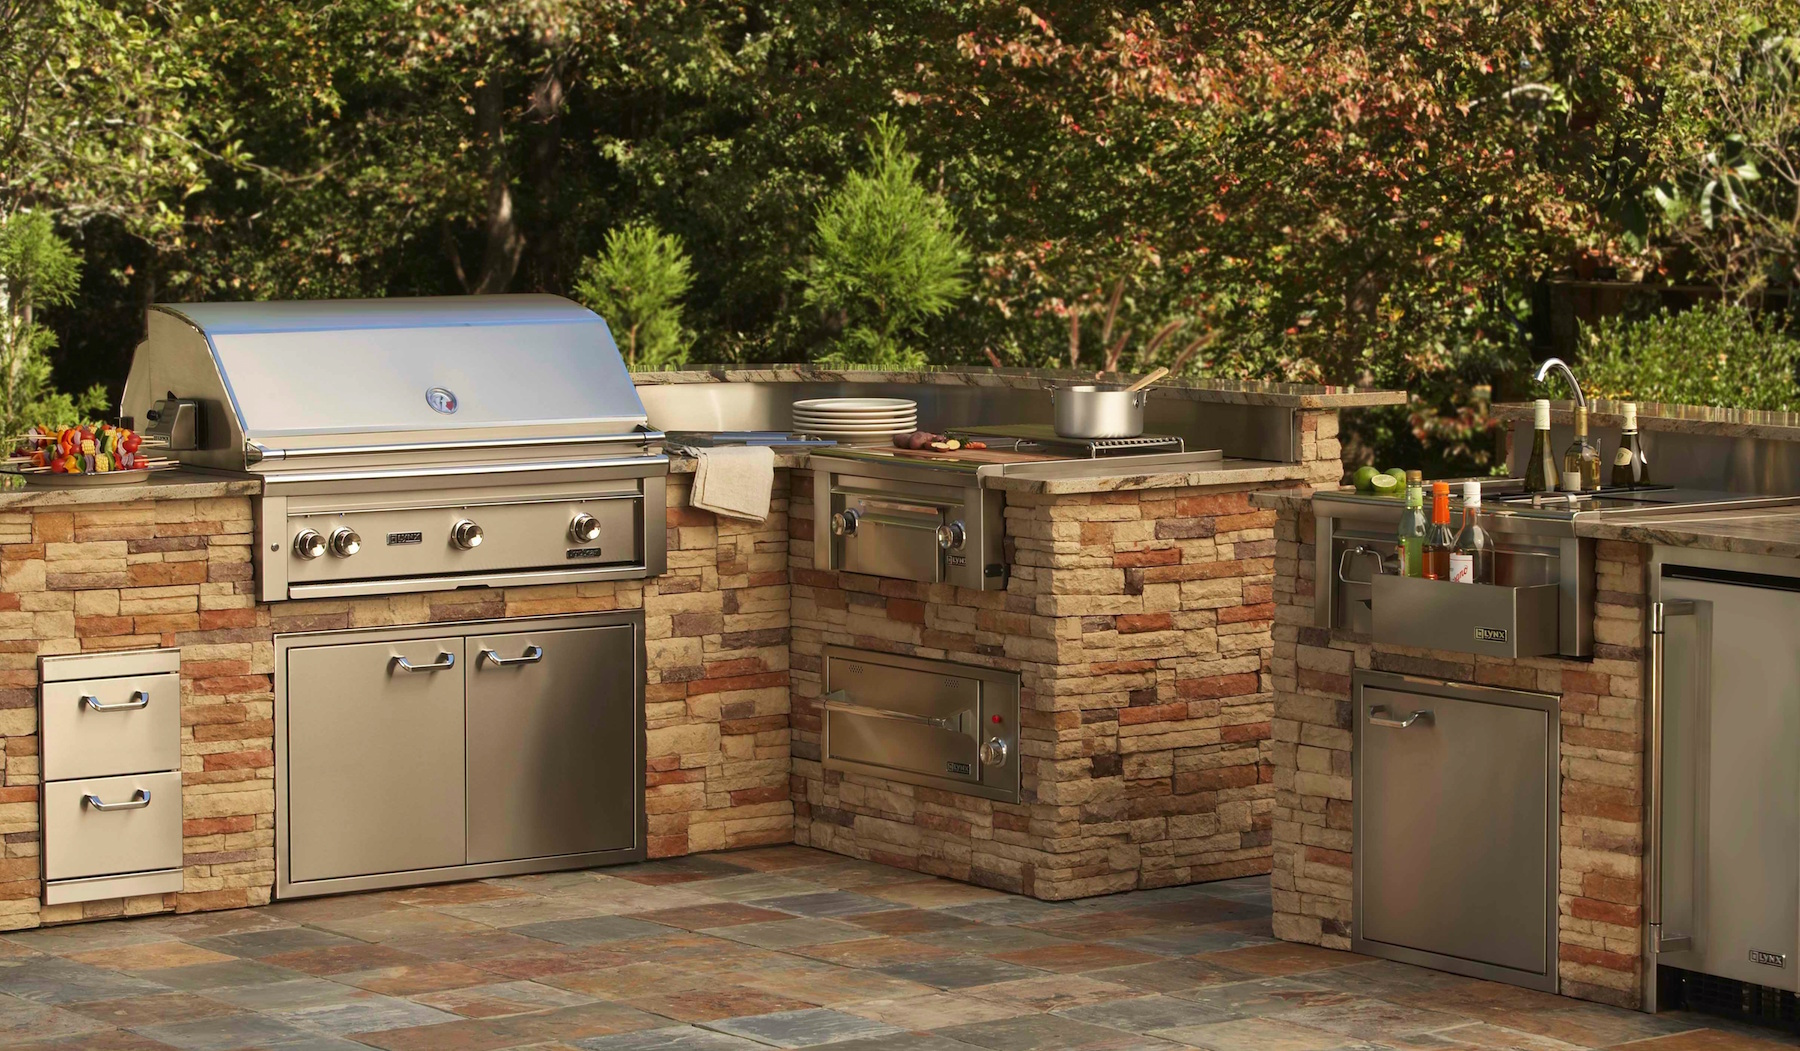 Choosing a professional barbecue grill for your outdoor for Backyard built in bbq ideas